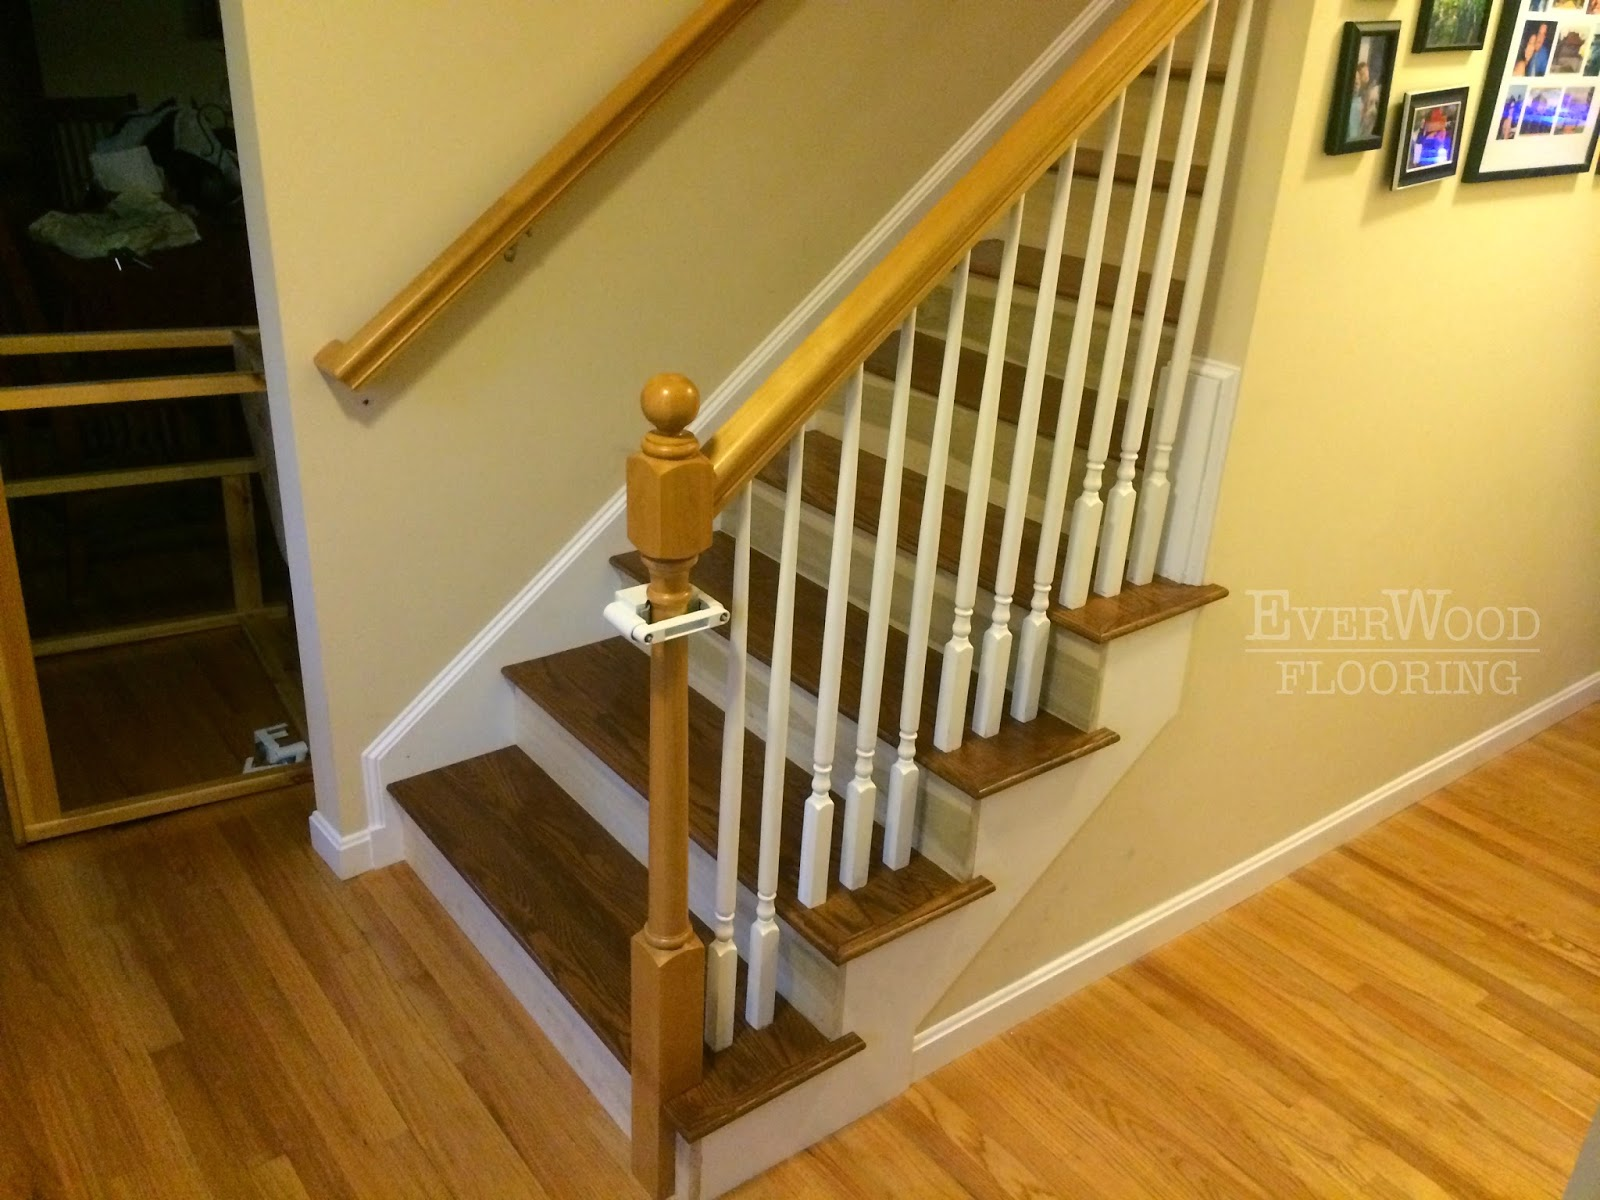 Everwood Flooring Project Profiles Prefinished Oak